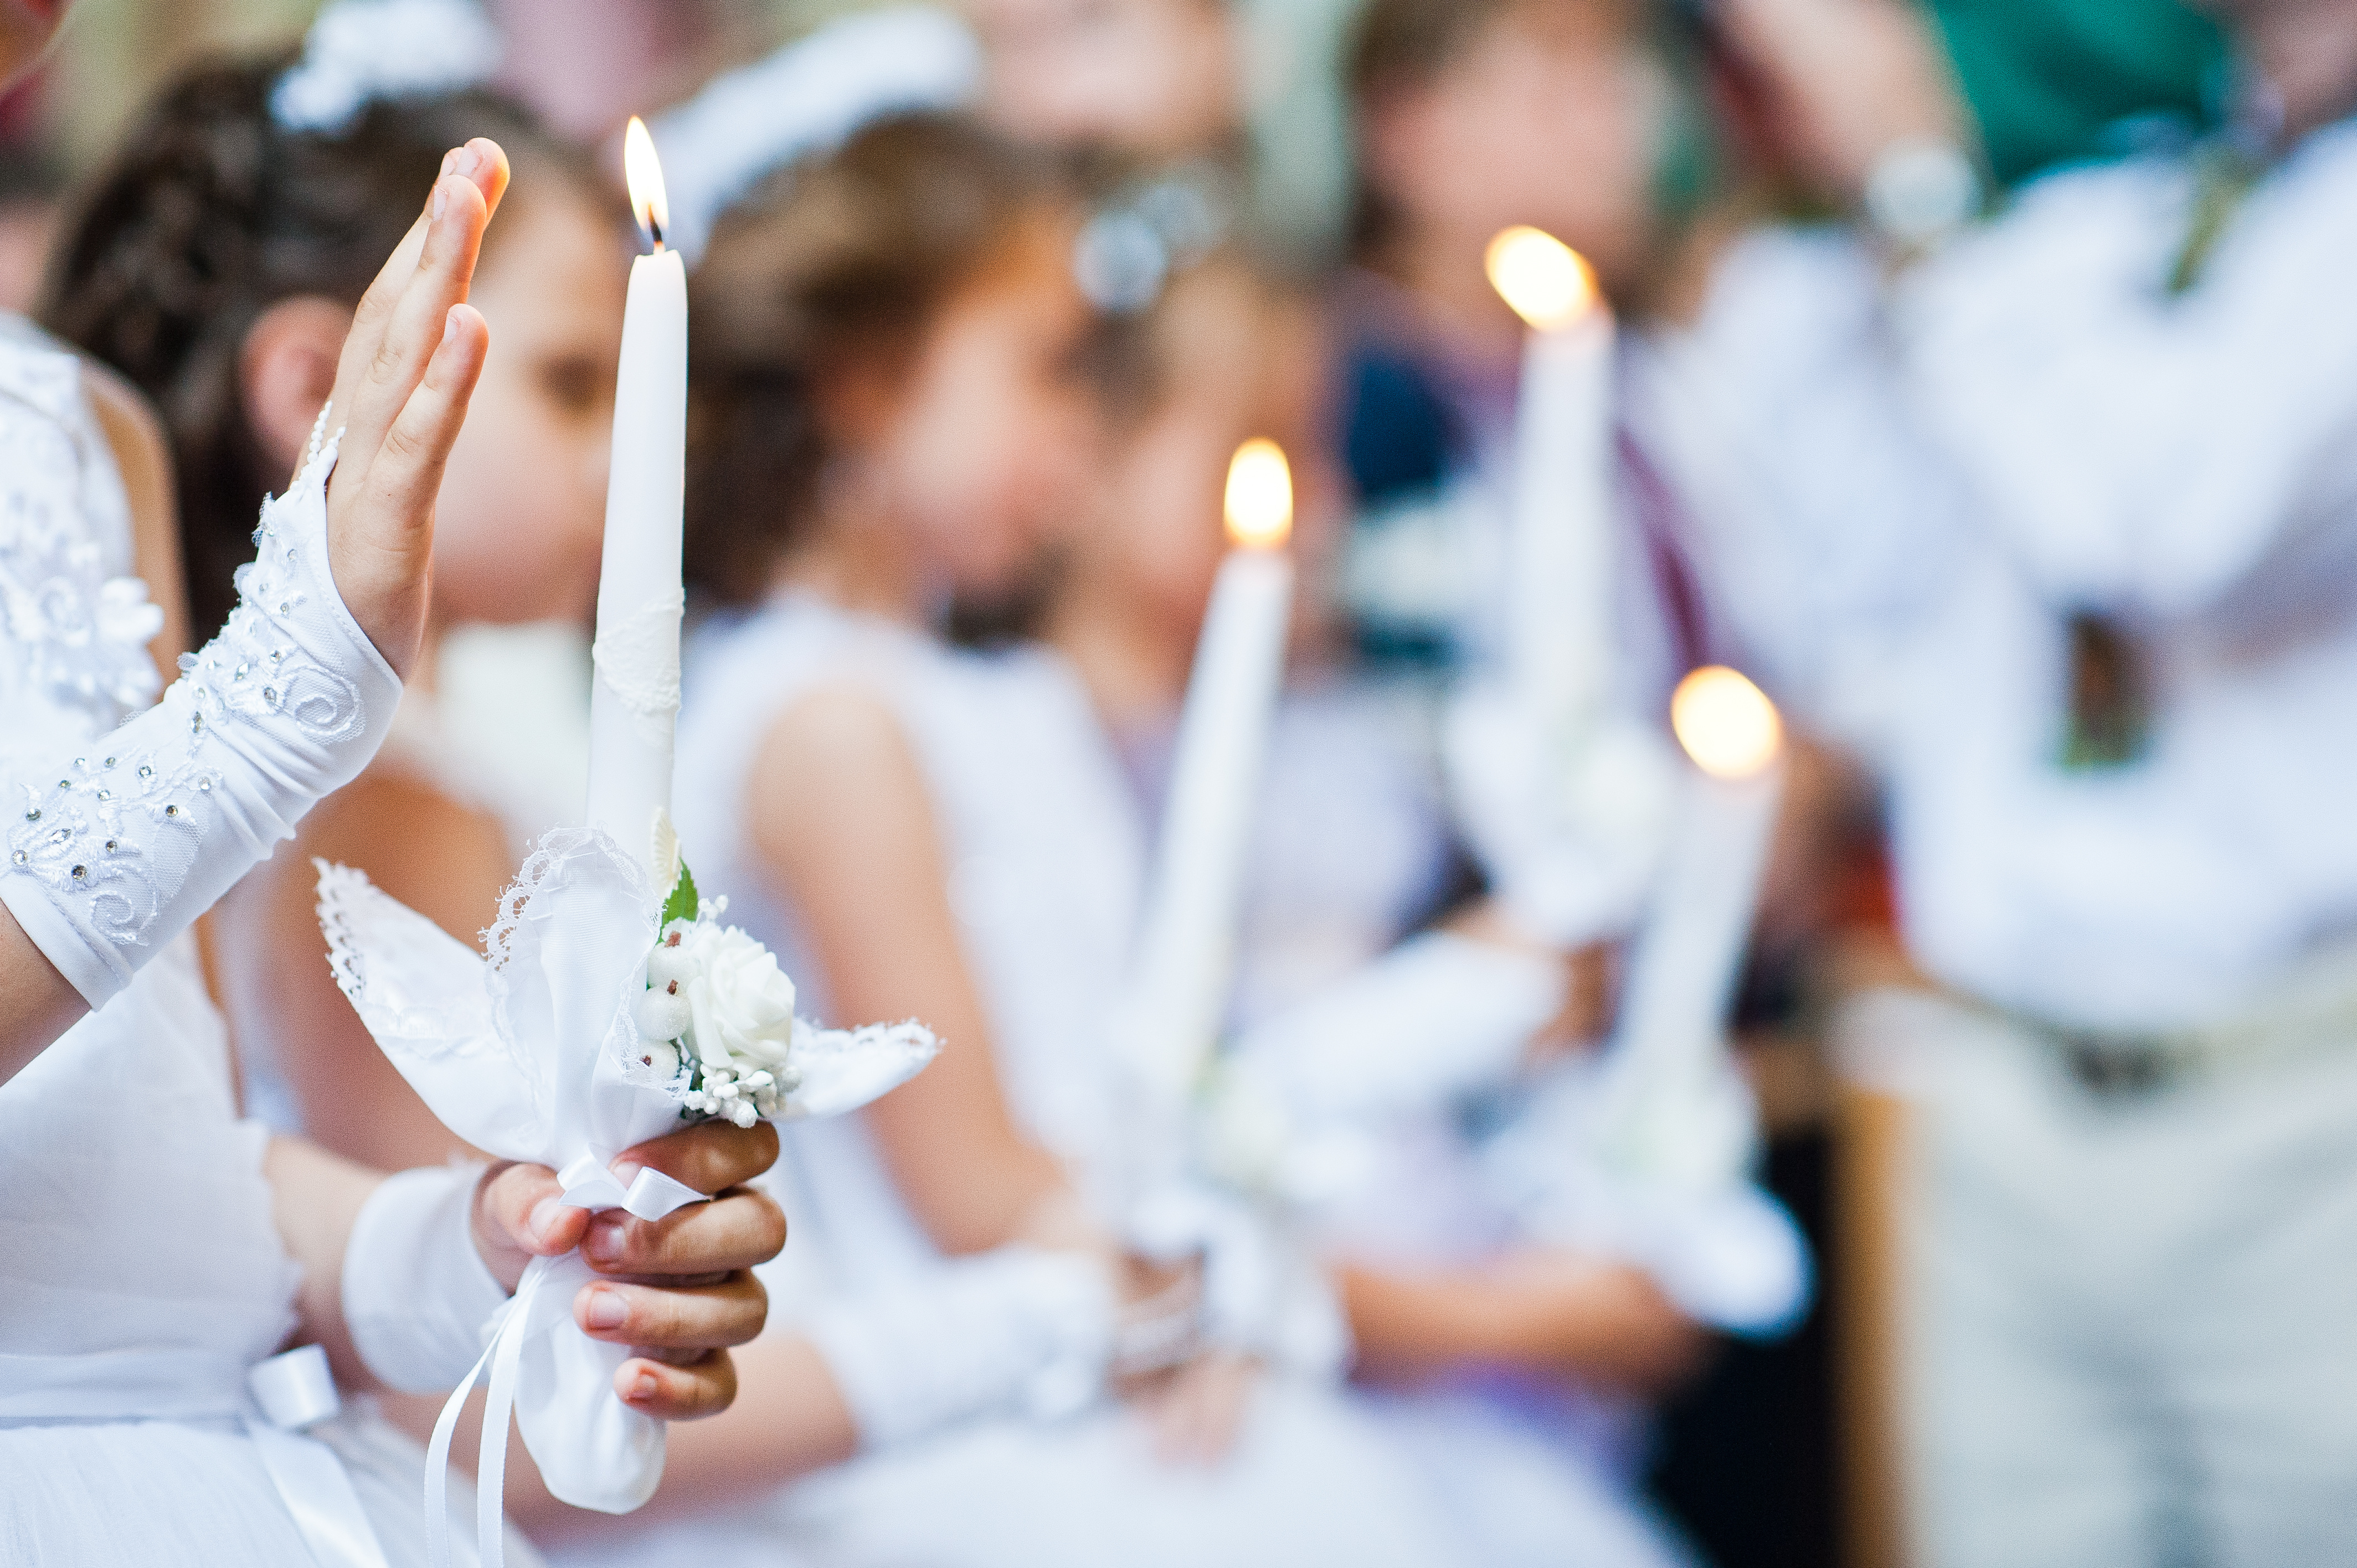 20 first communion gifts you d never think to give